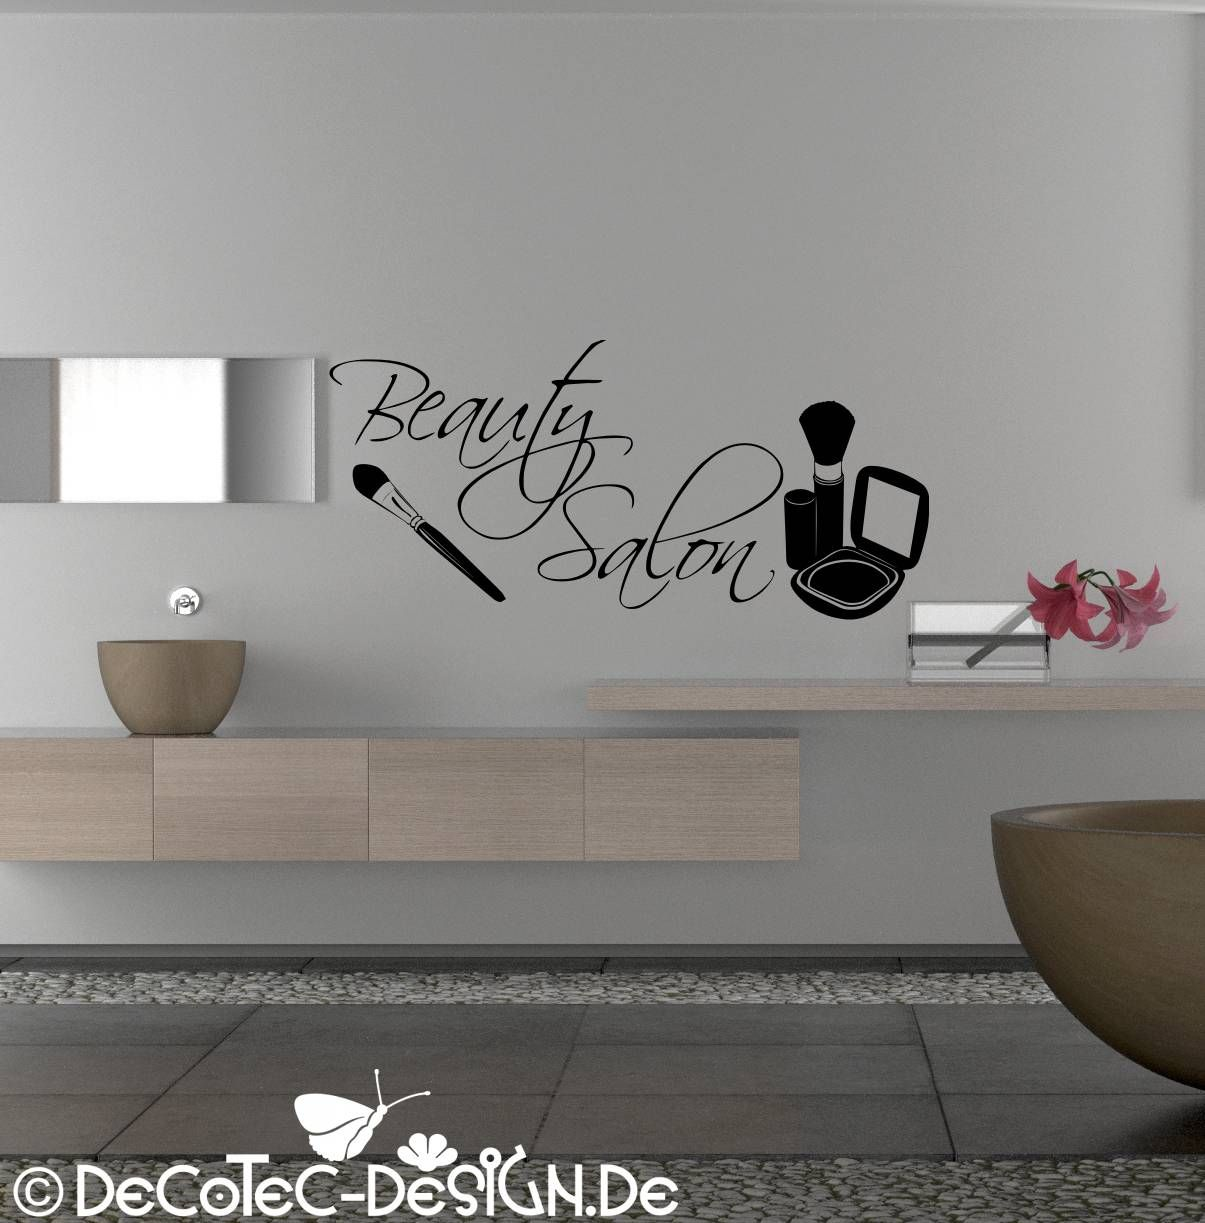 salon interior salon interior design beauty salons interior ideas